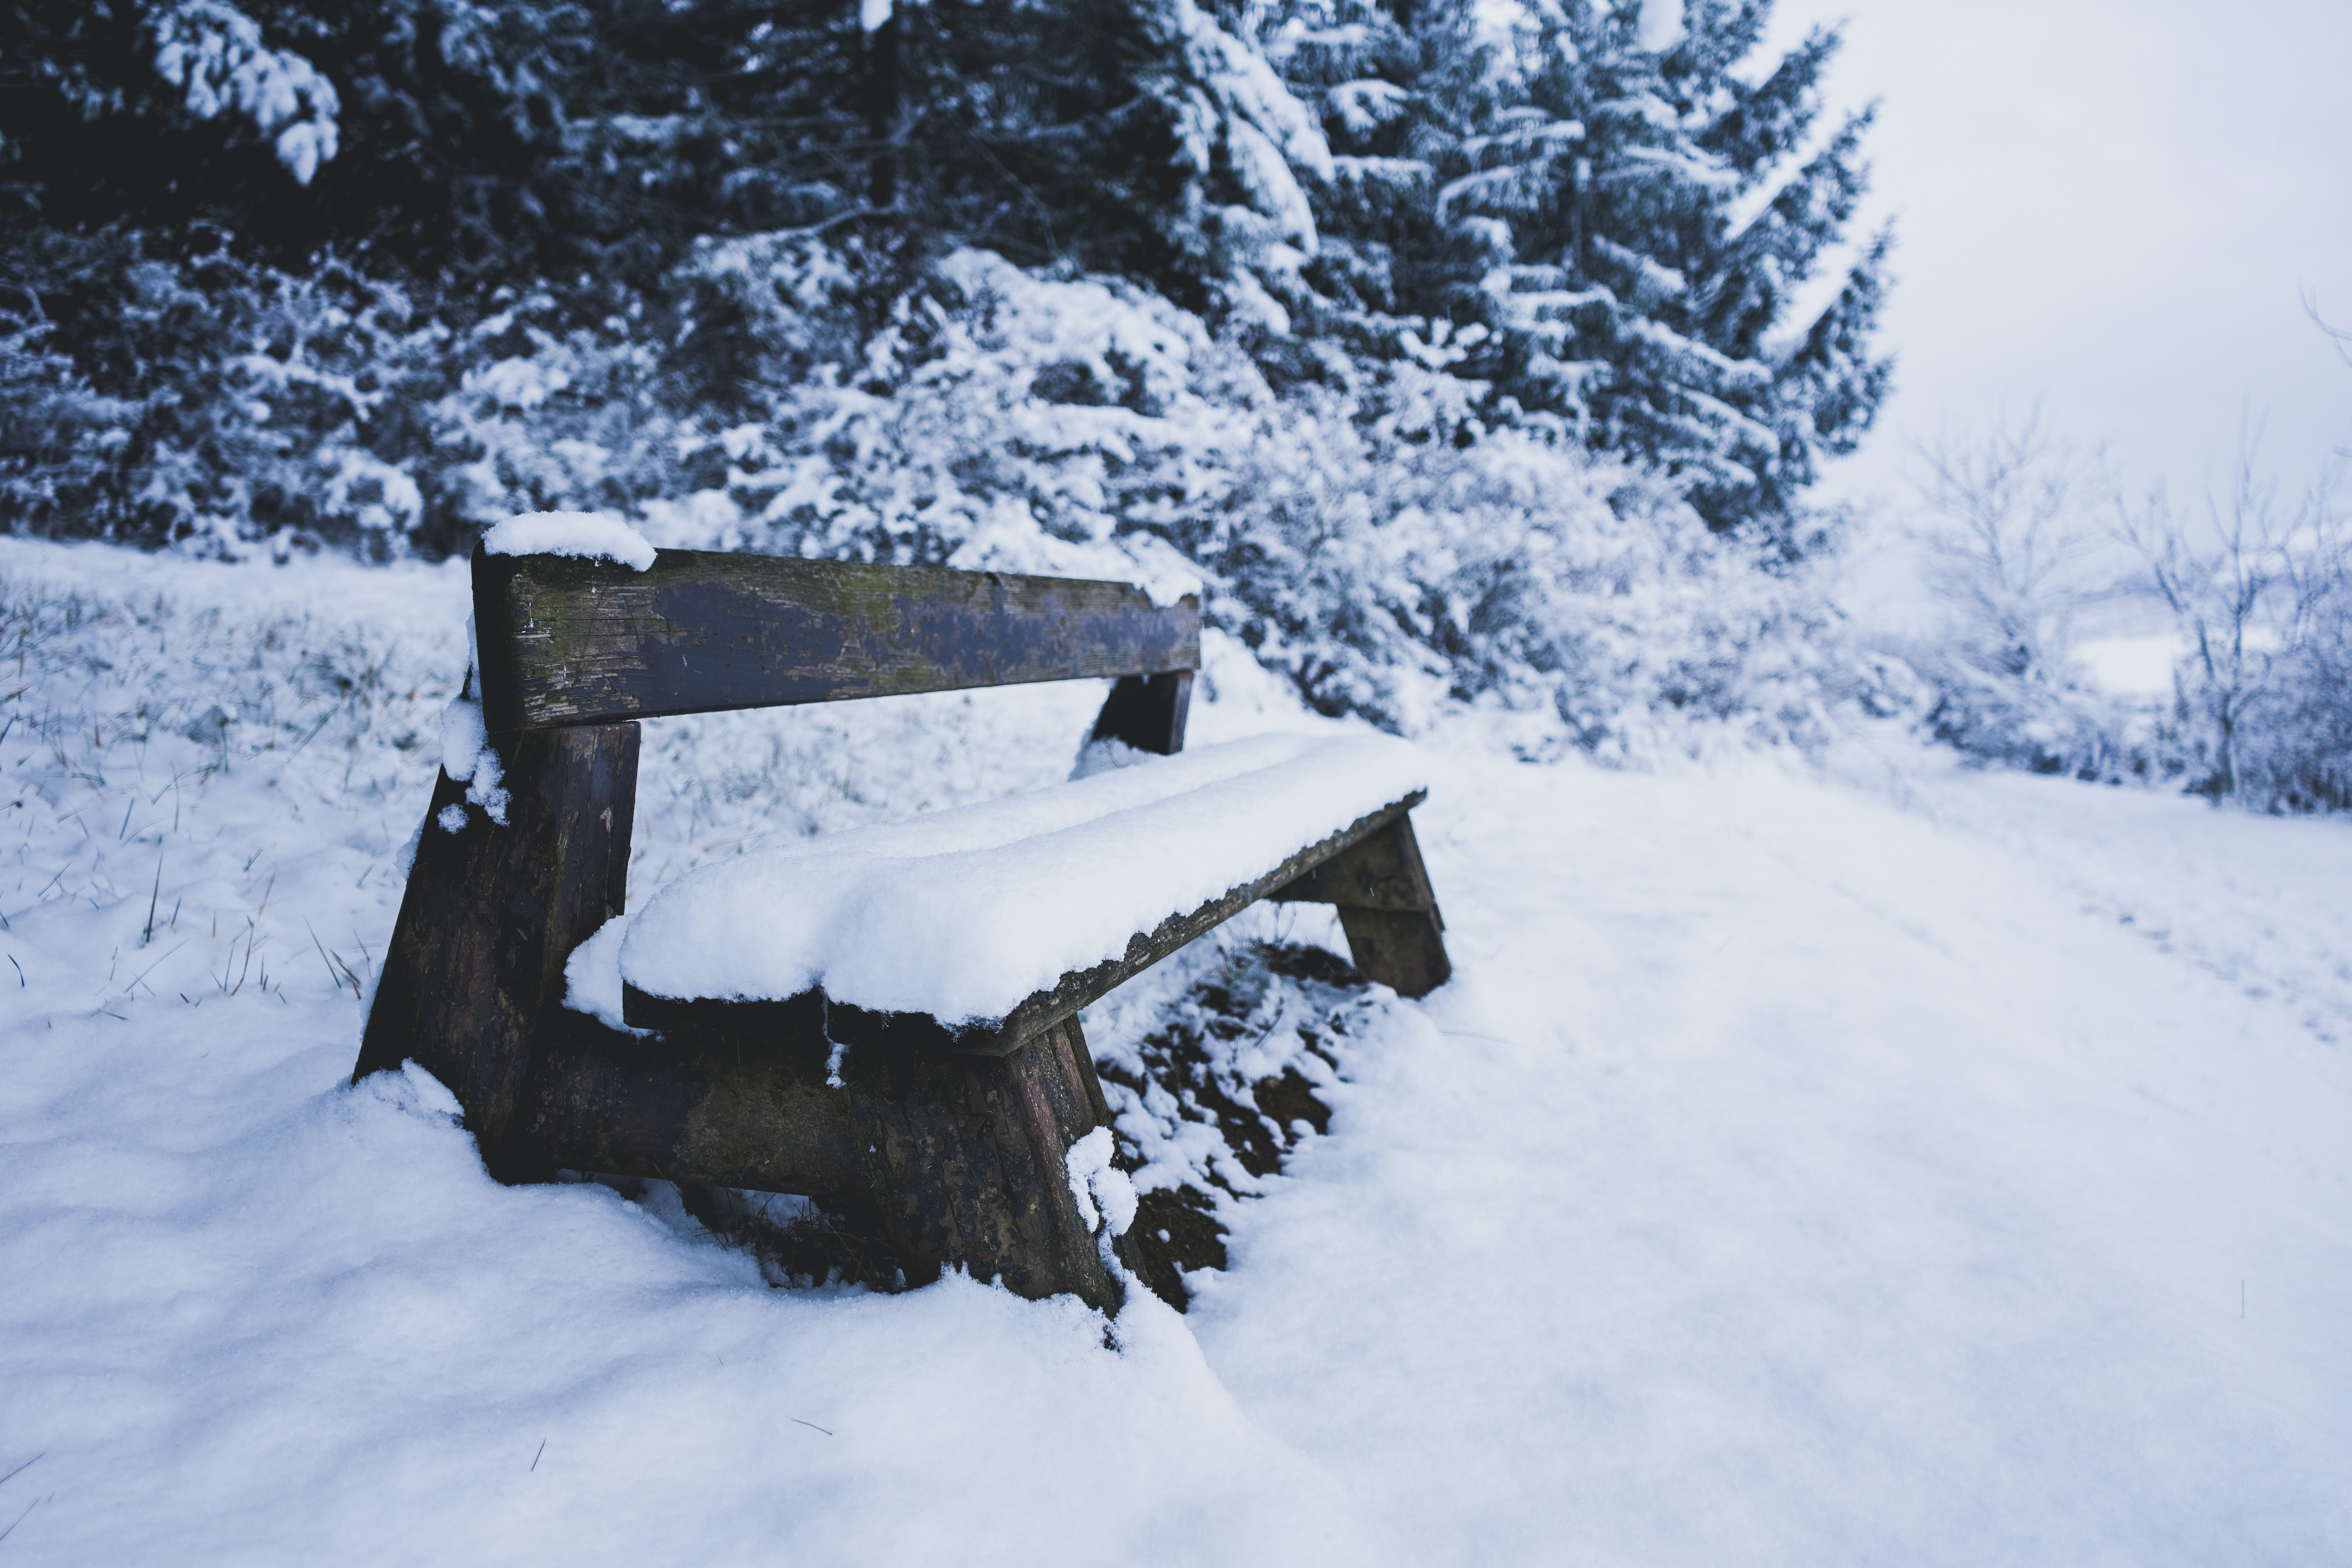 brown wooden bench on snow field beside trees at daytime